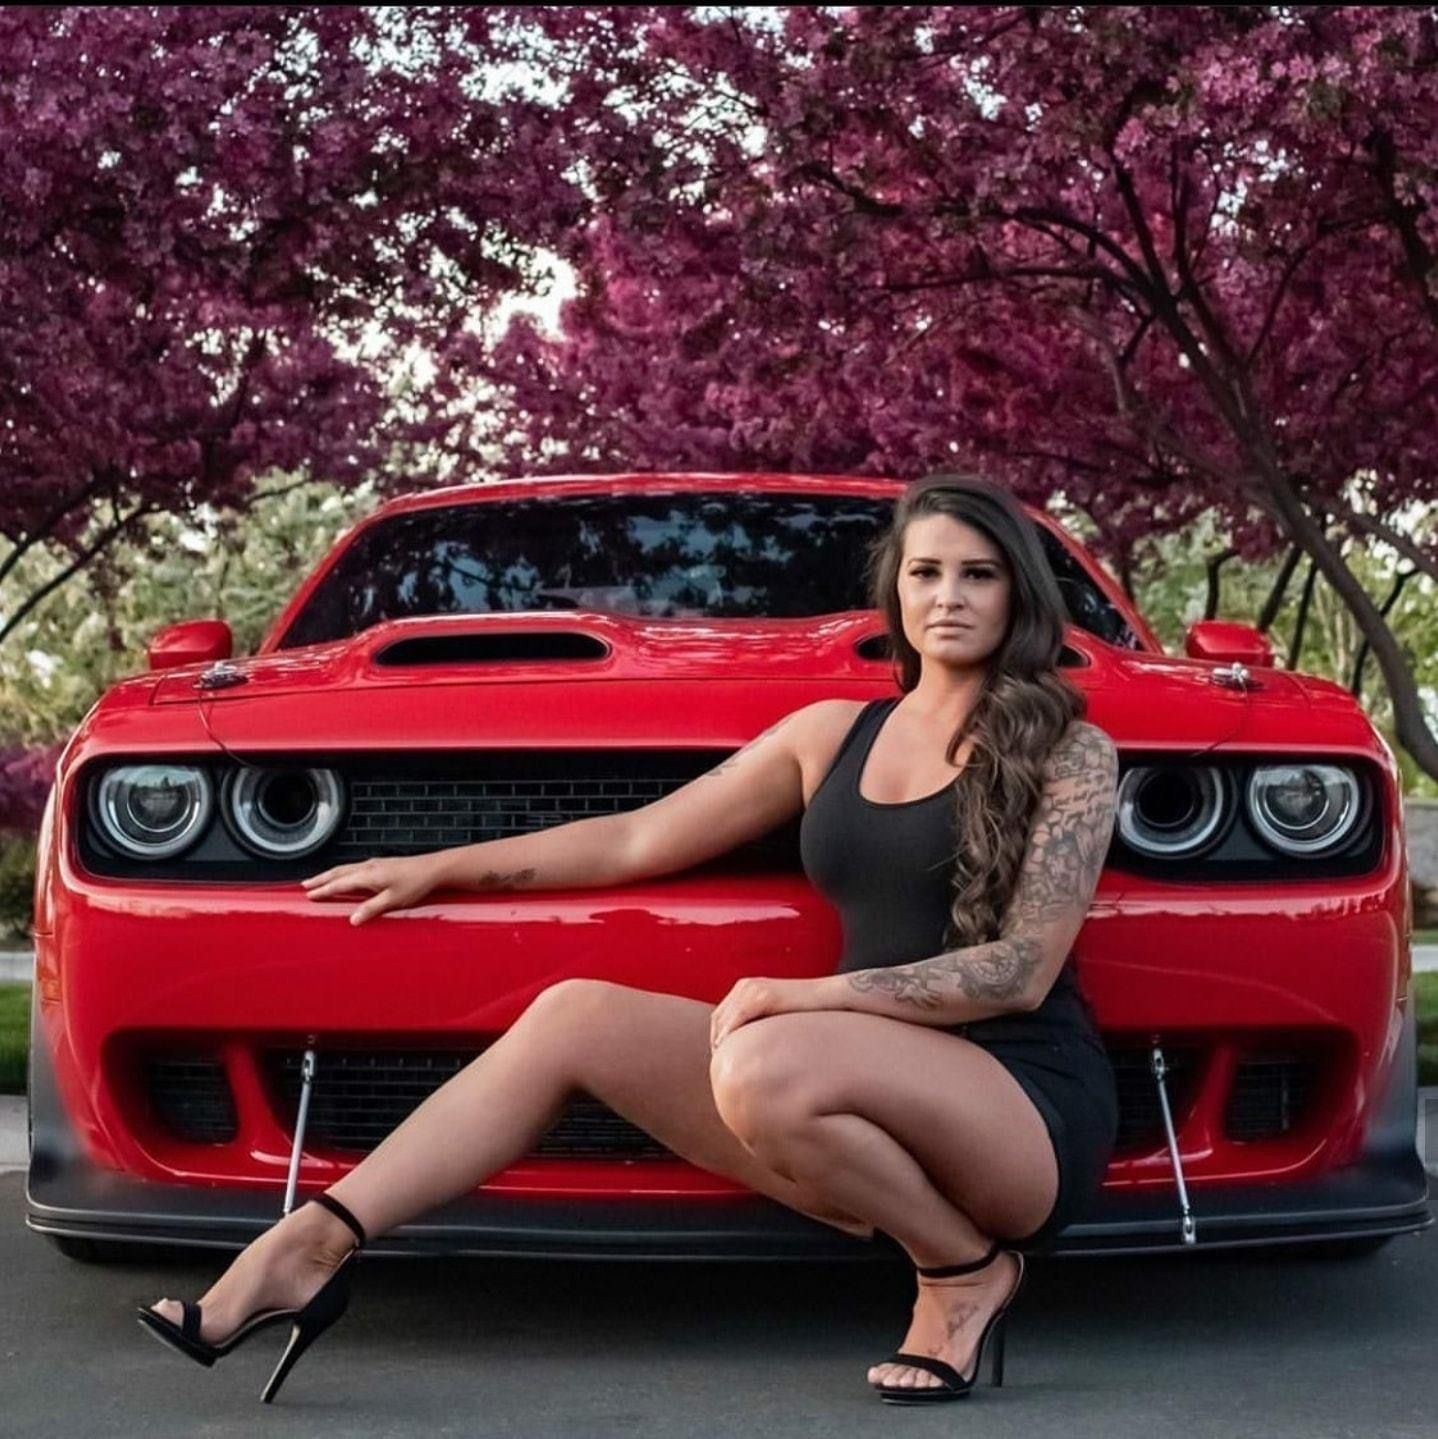 Pin on Hot Chics and Cars